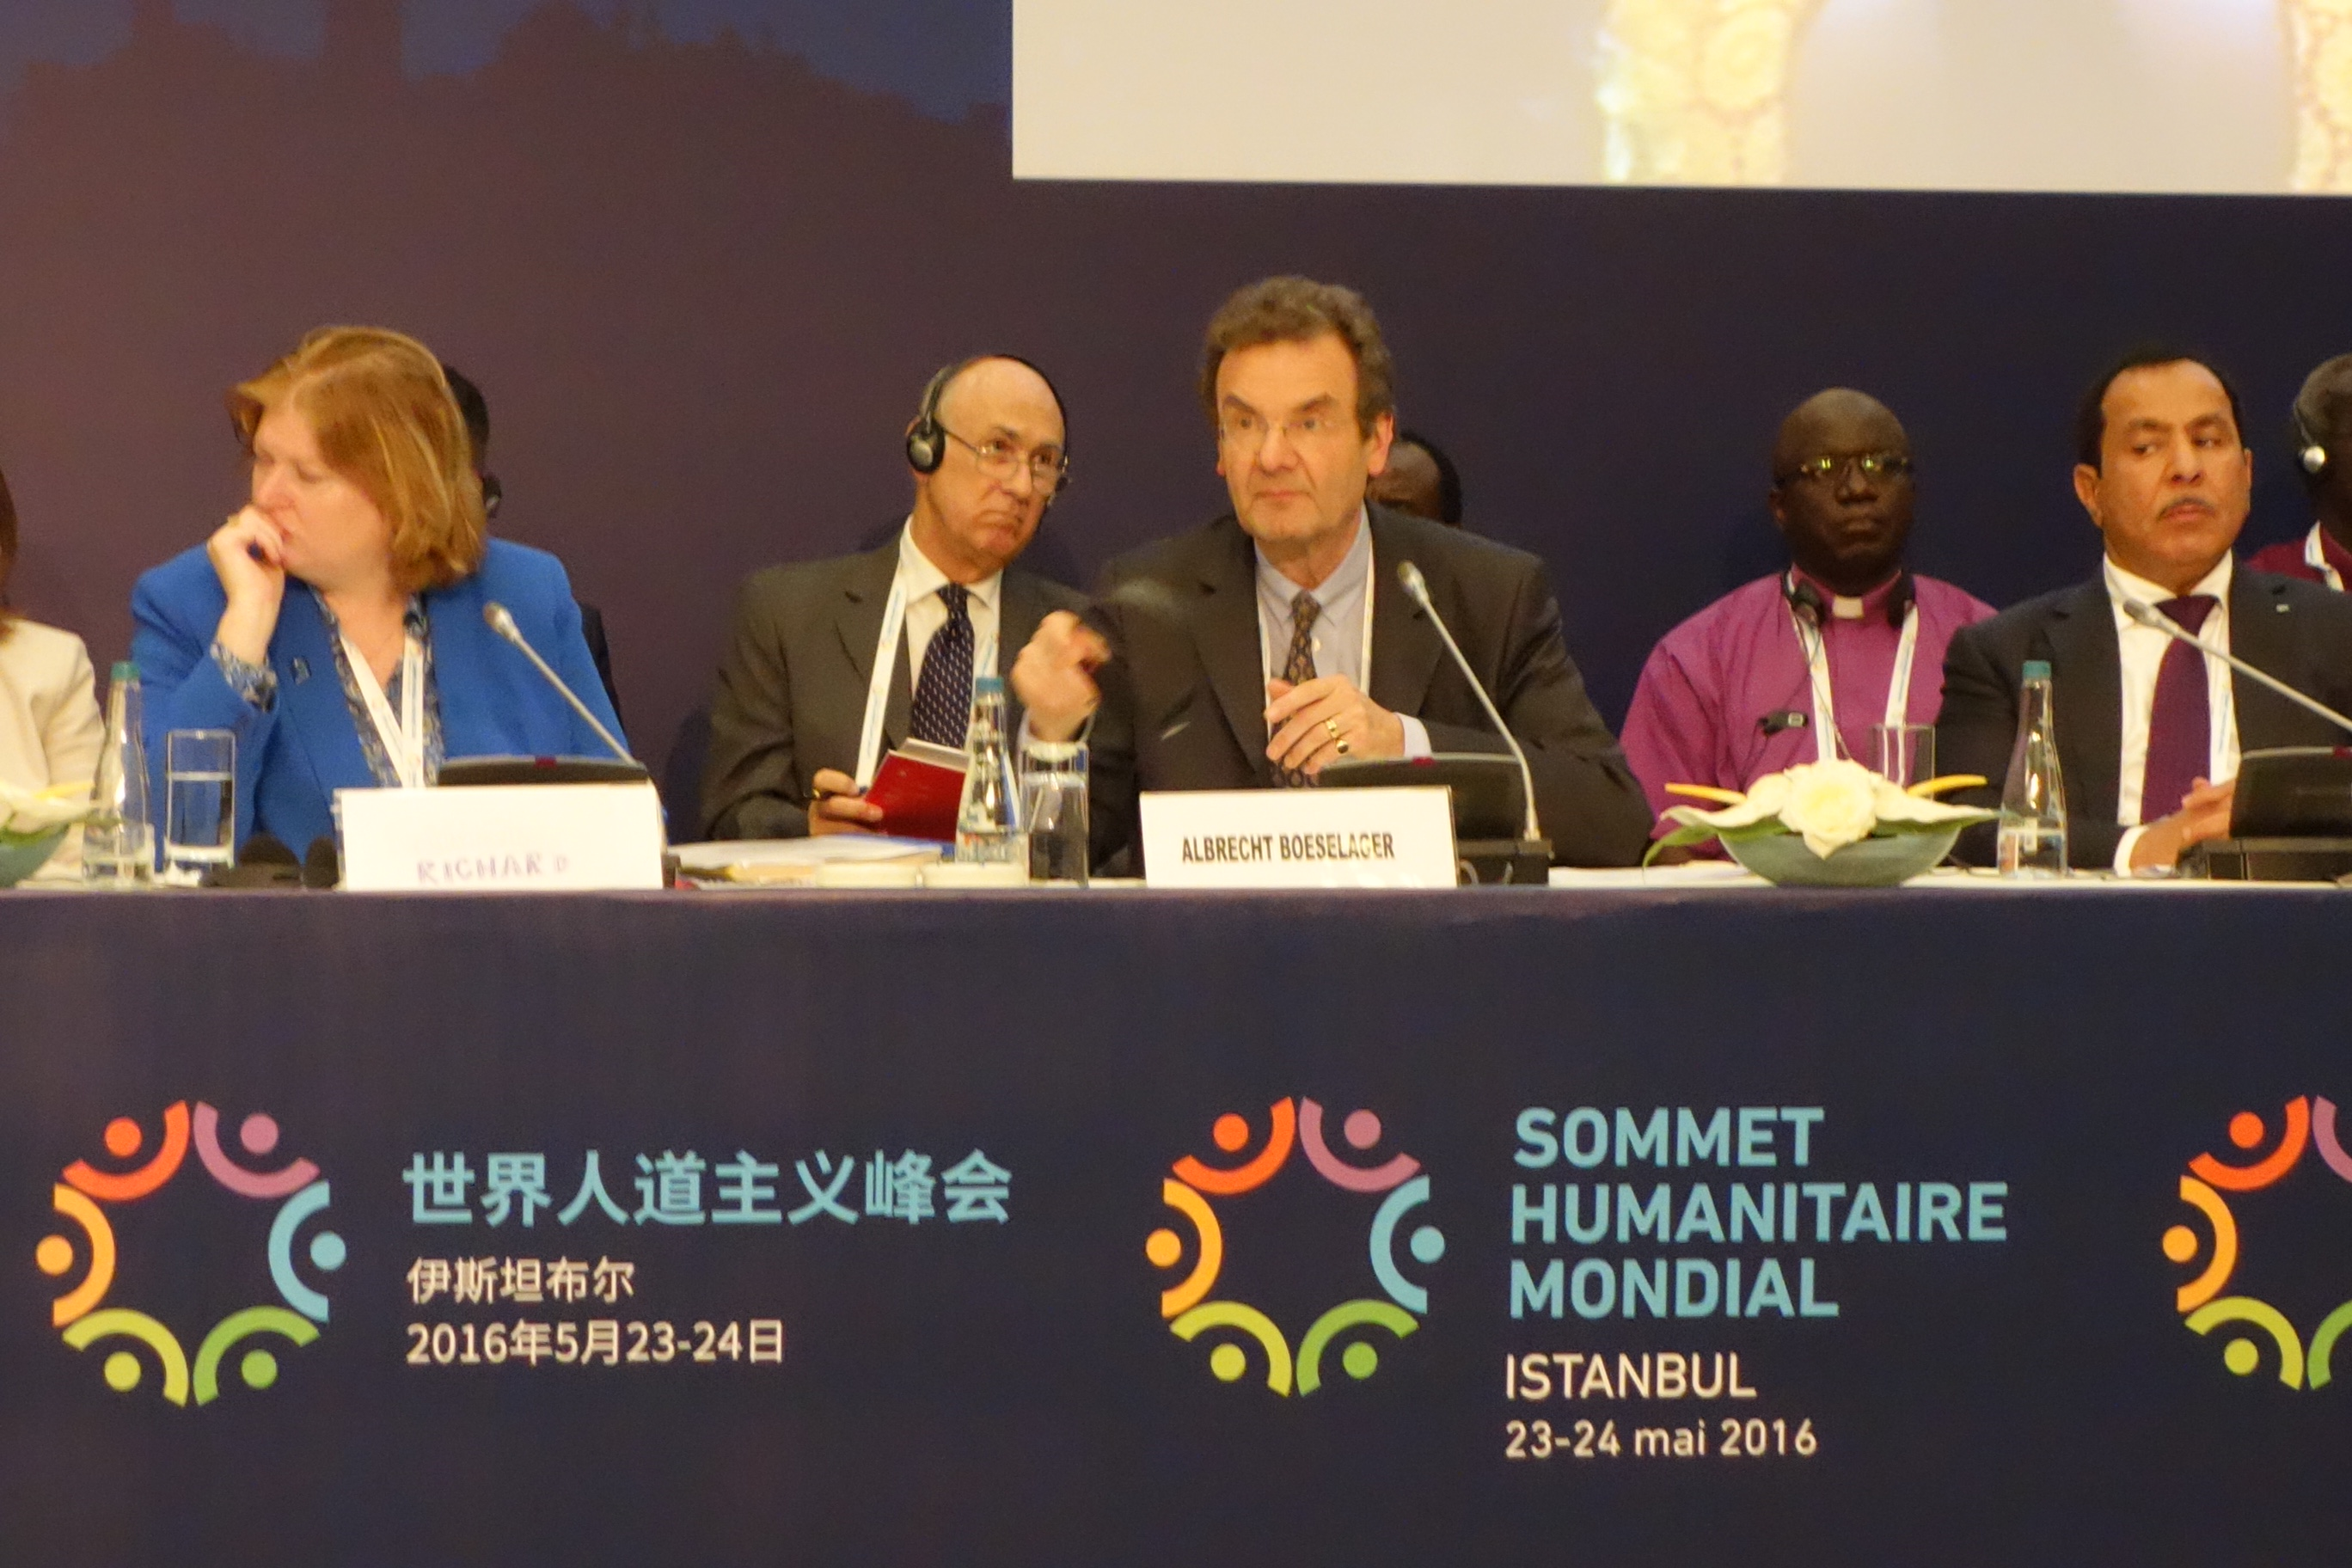 Albrecht von Boselager, Grand Chancellor of the Order of Malta at the World Humanitarian Summit.